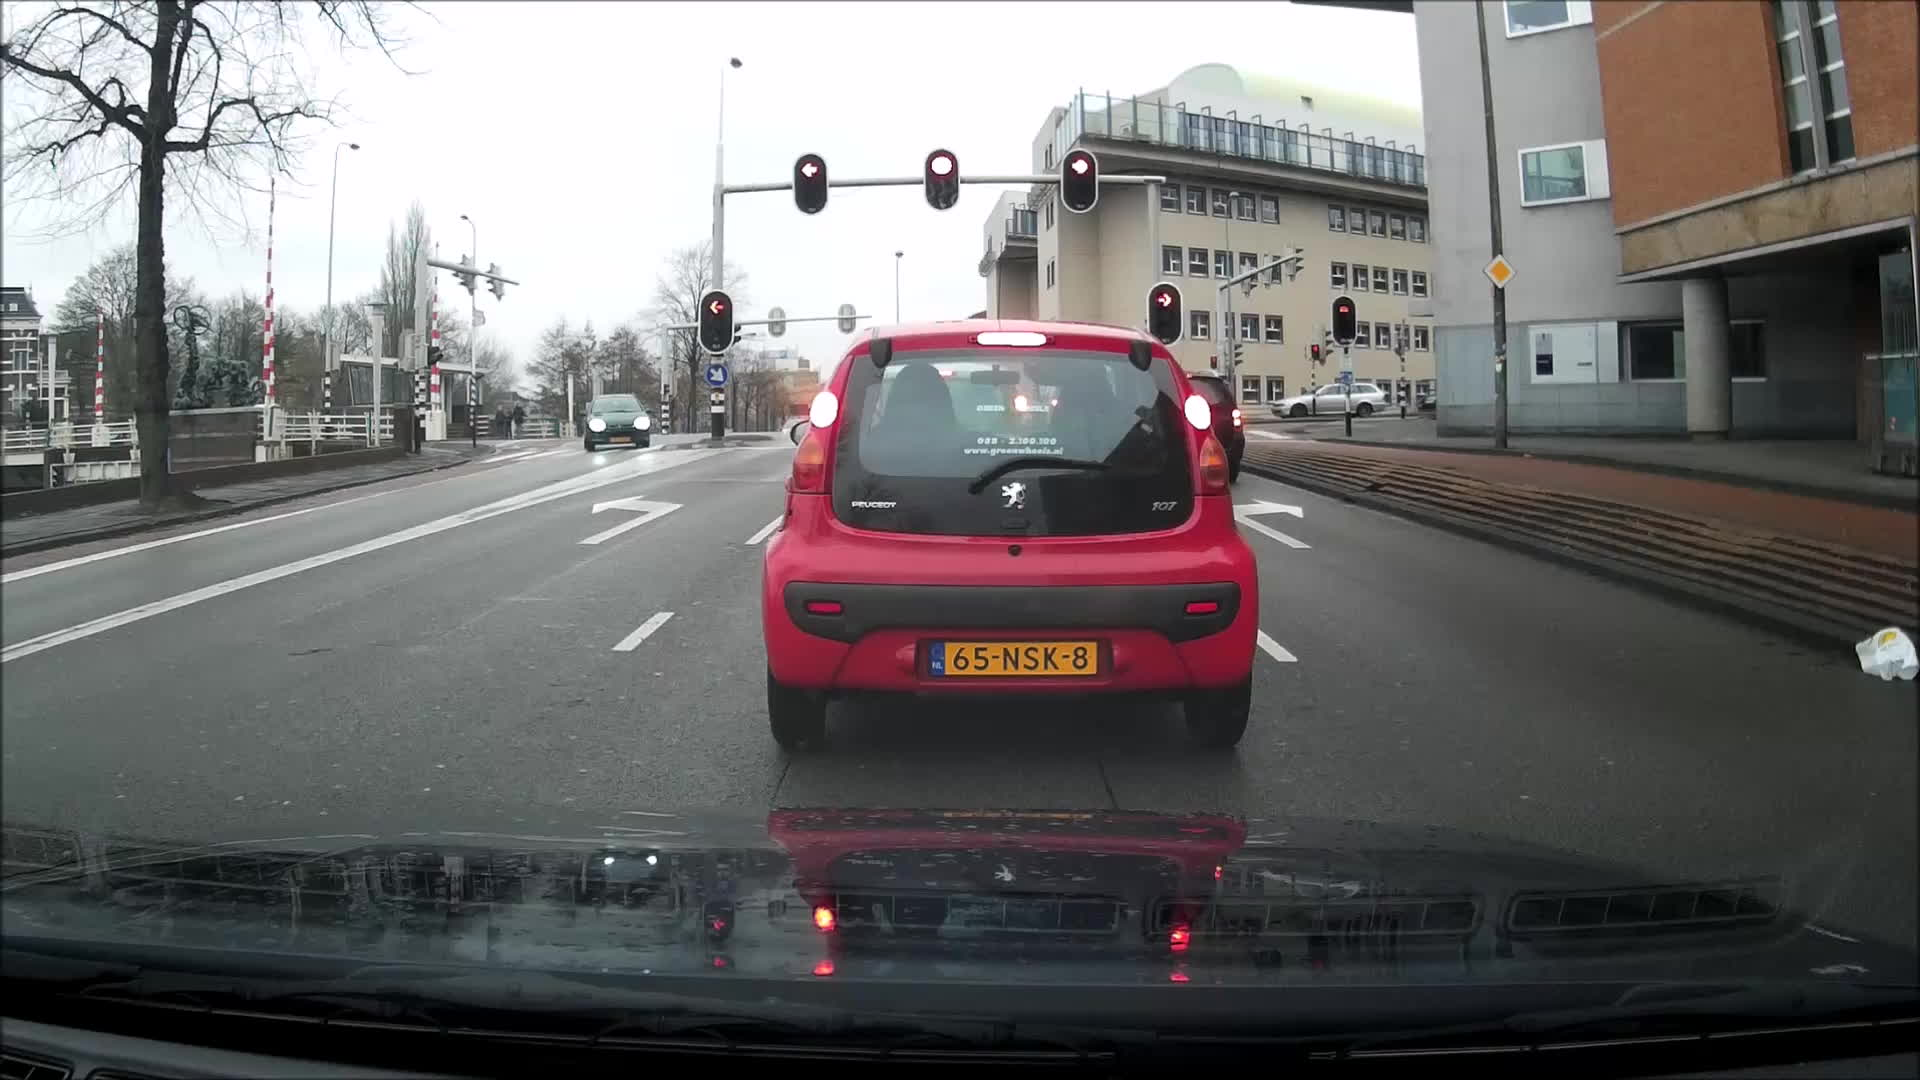 Roadcam, Intersections are hard GIFs